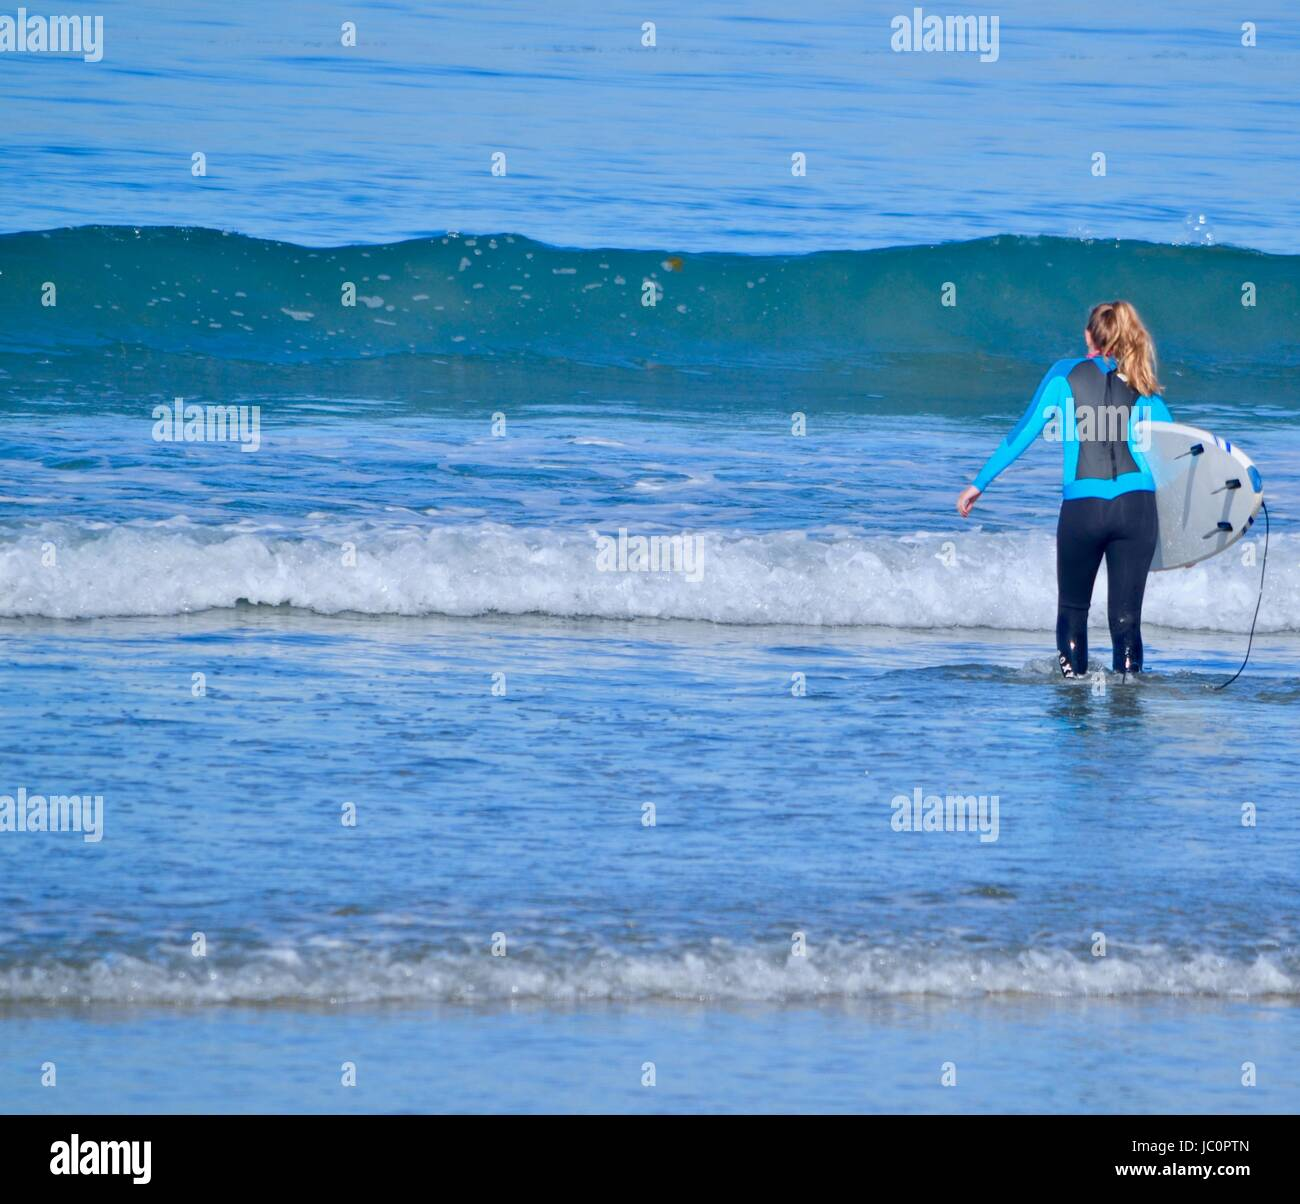 Girl walking into ocean with surfboard - Stock Image